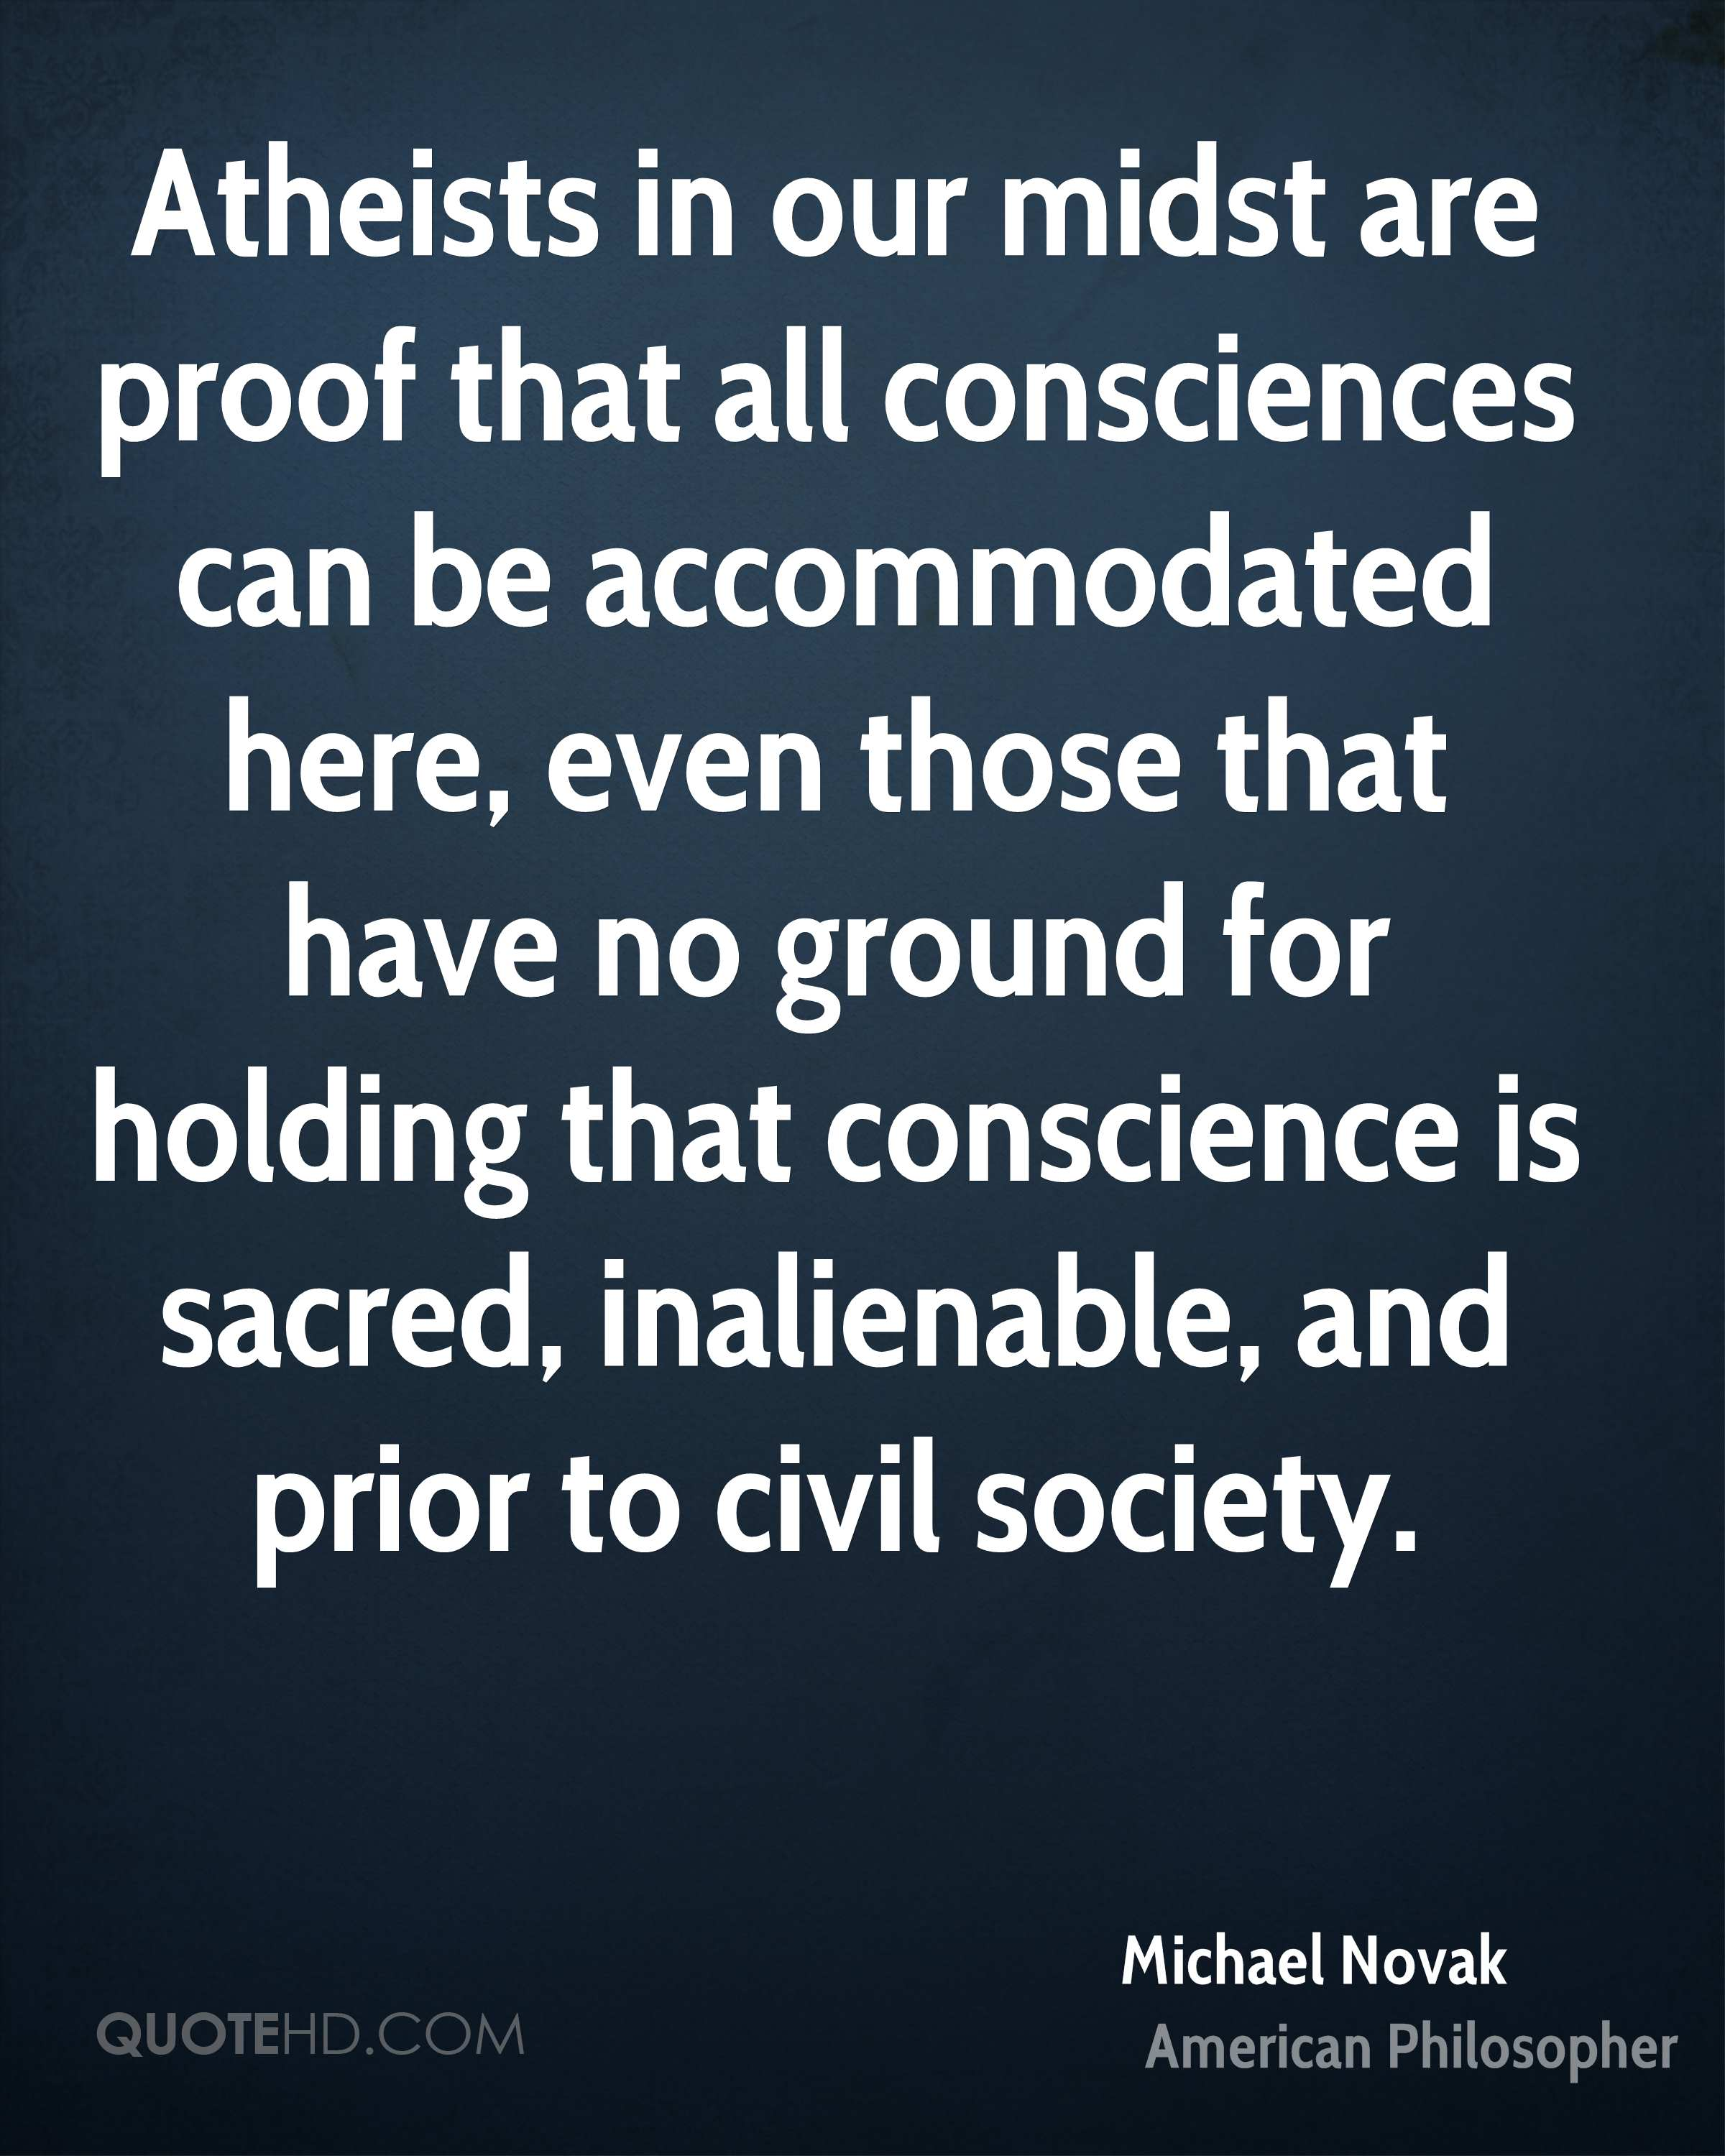 Atheists in our midst are proof that all consciences can be accommodated here, even those that have no ground for holding that conscience is sacred, inalienable, and prior to civil society.